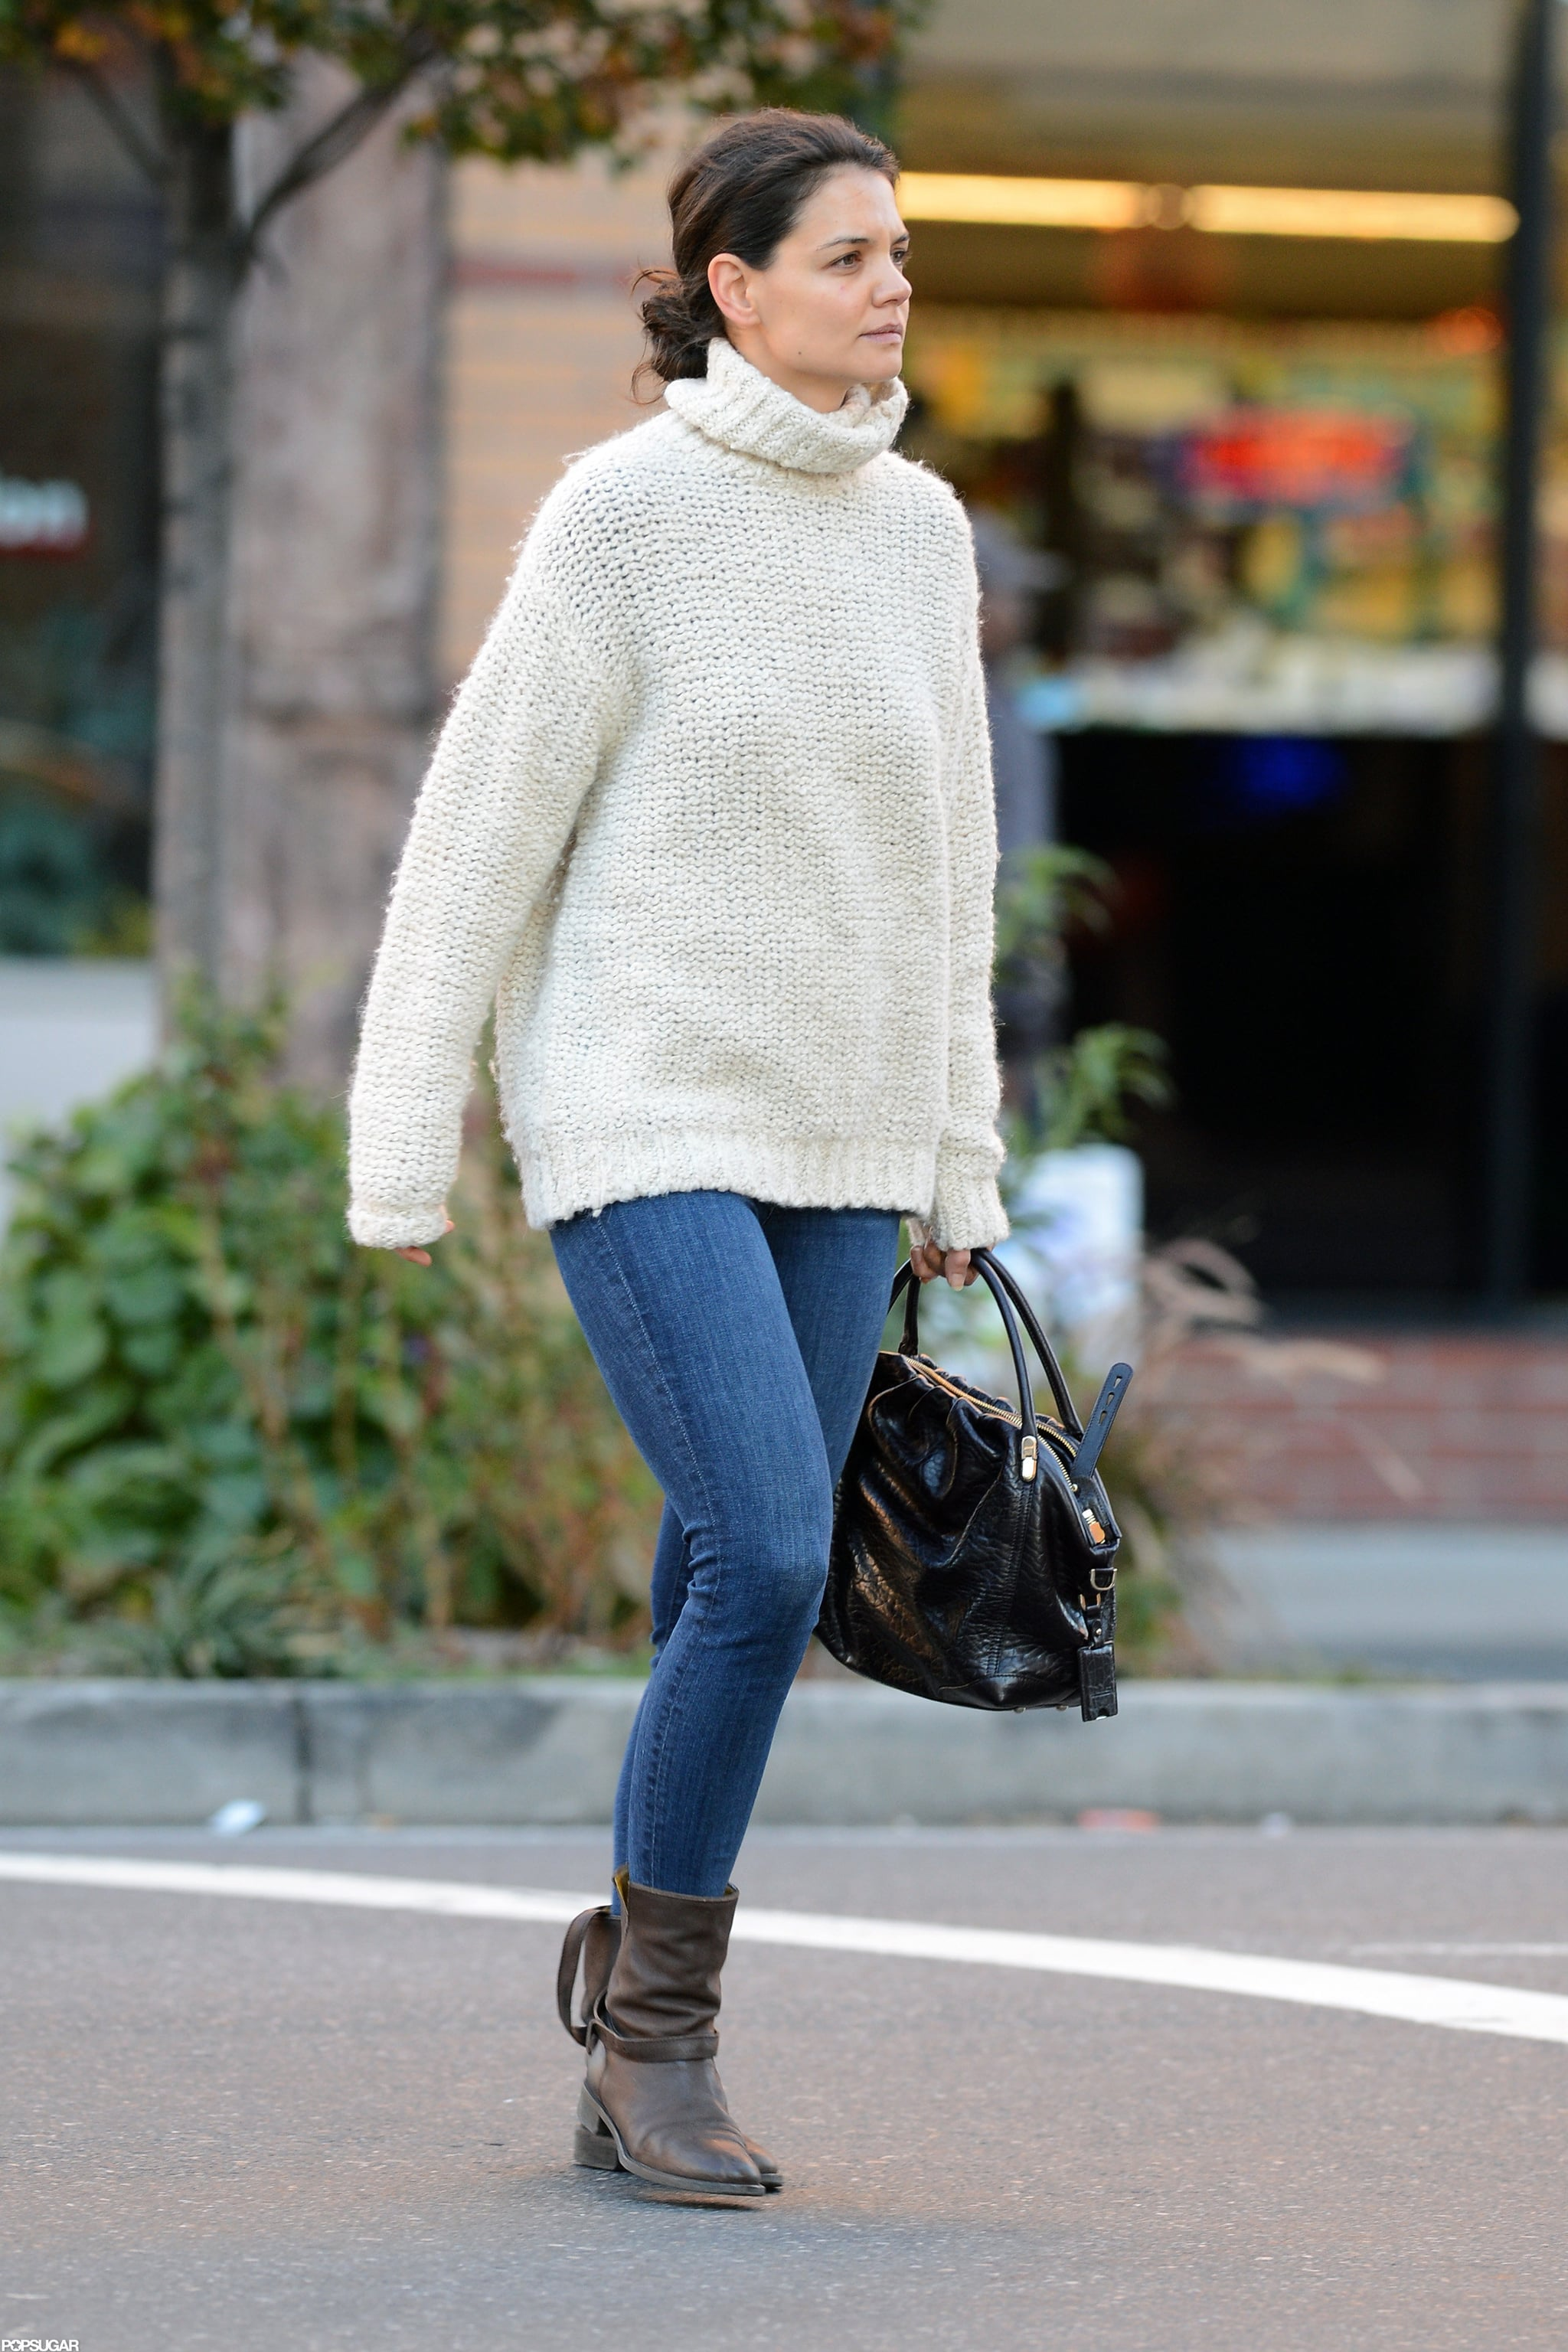 Katie Holmes stepped out in jeans in NYC.